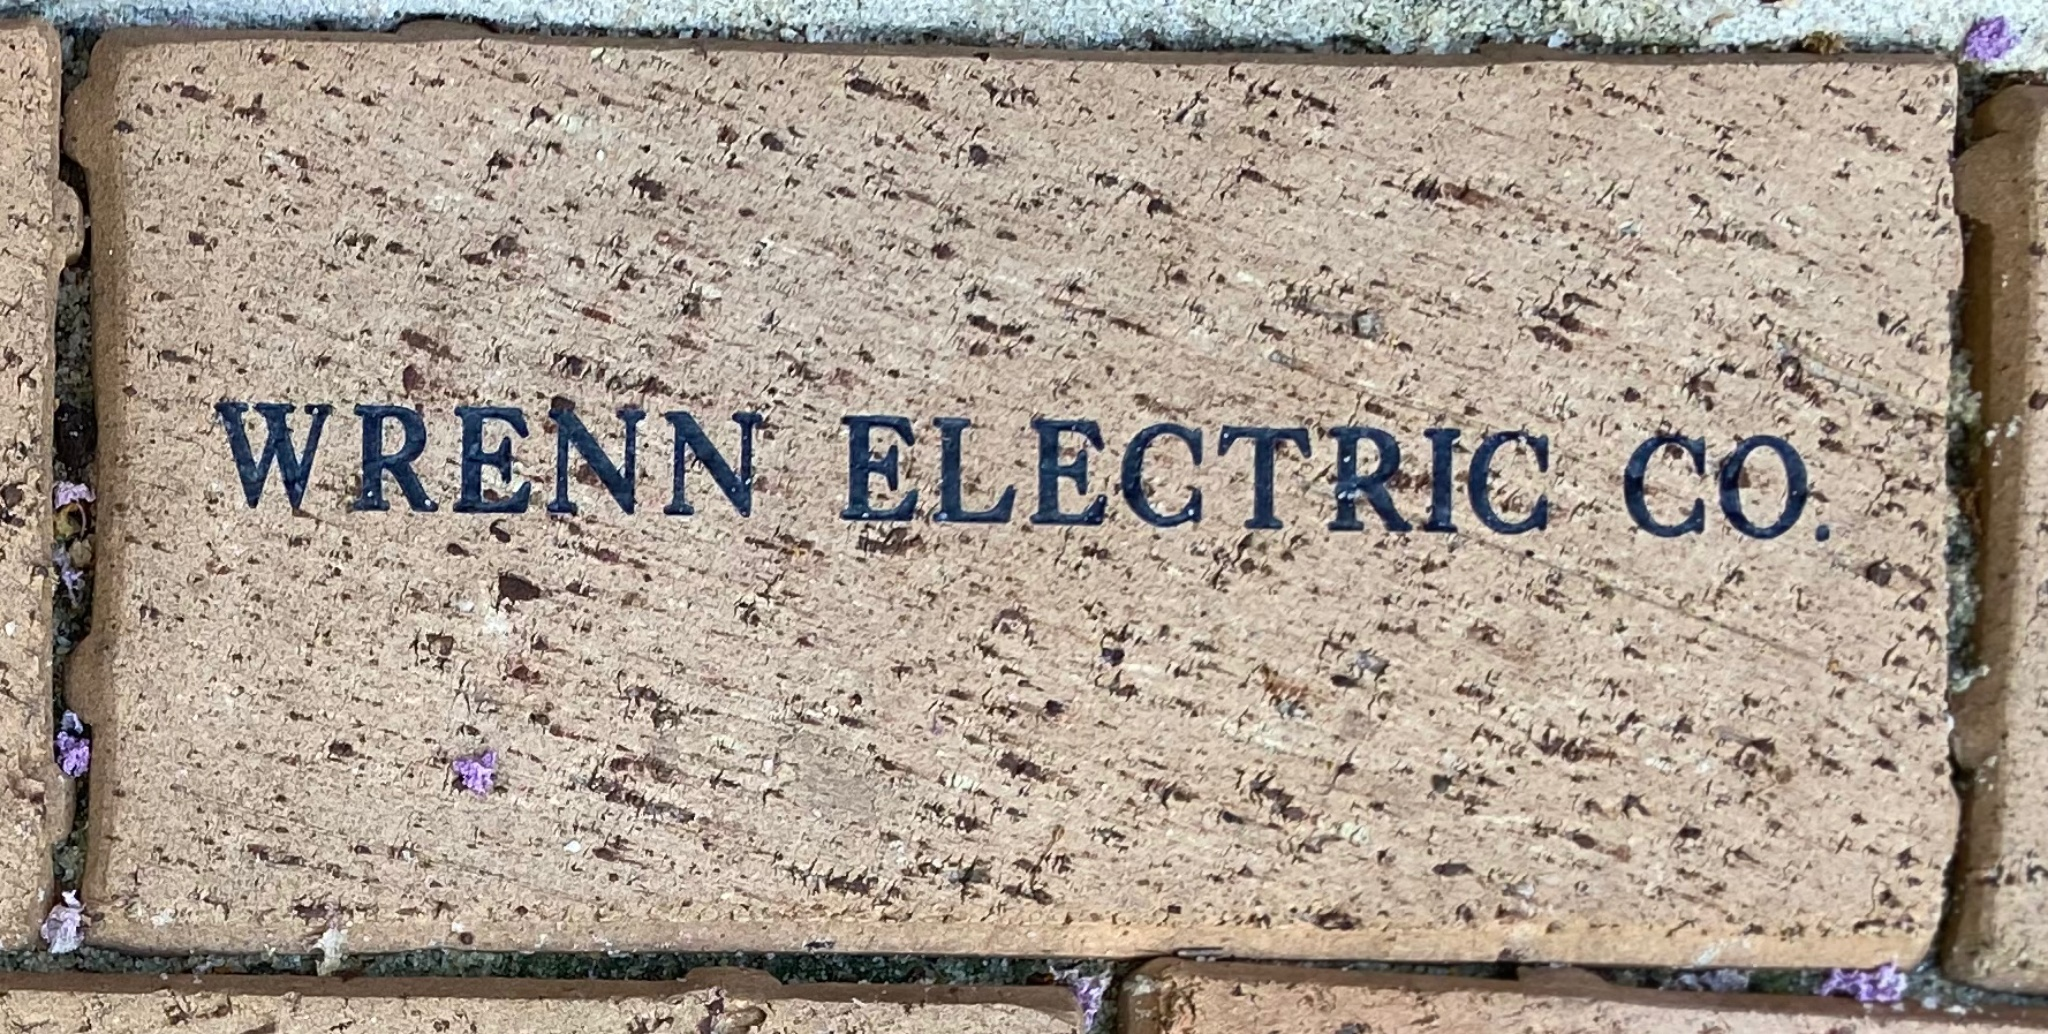 WRENN ELECTRIC CO.